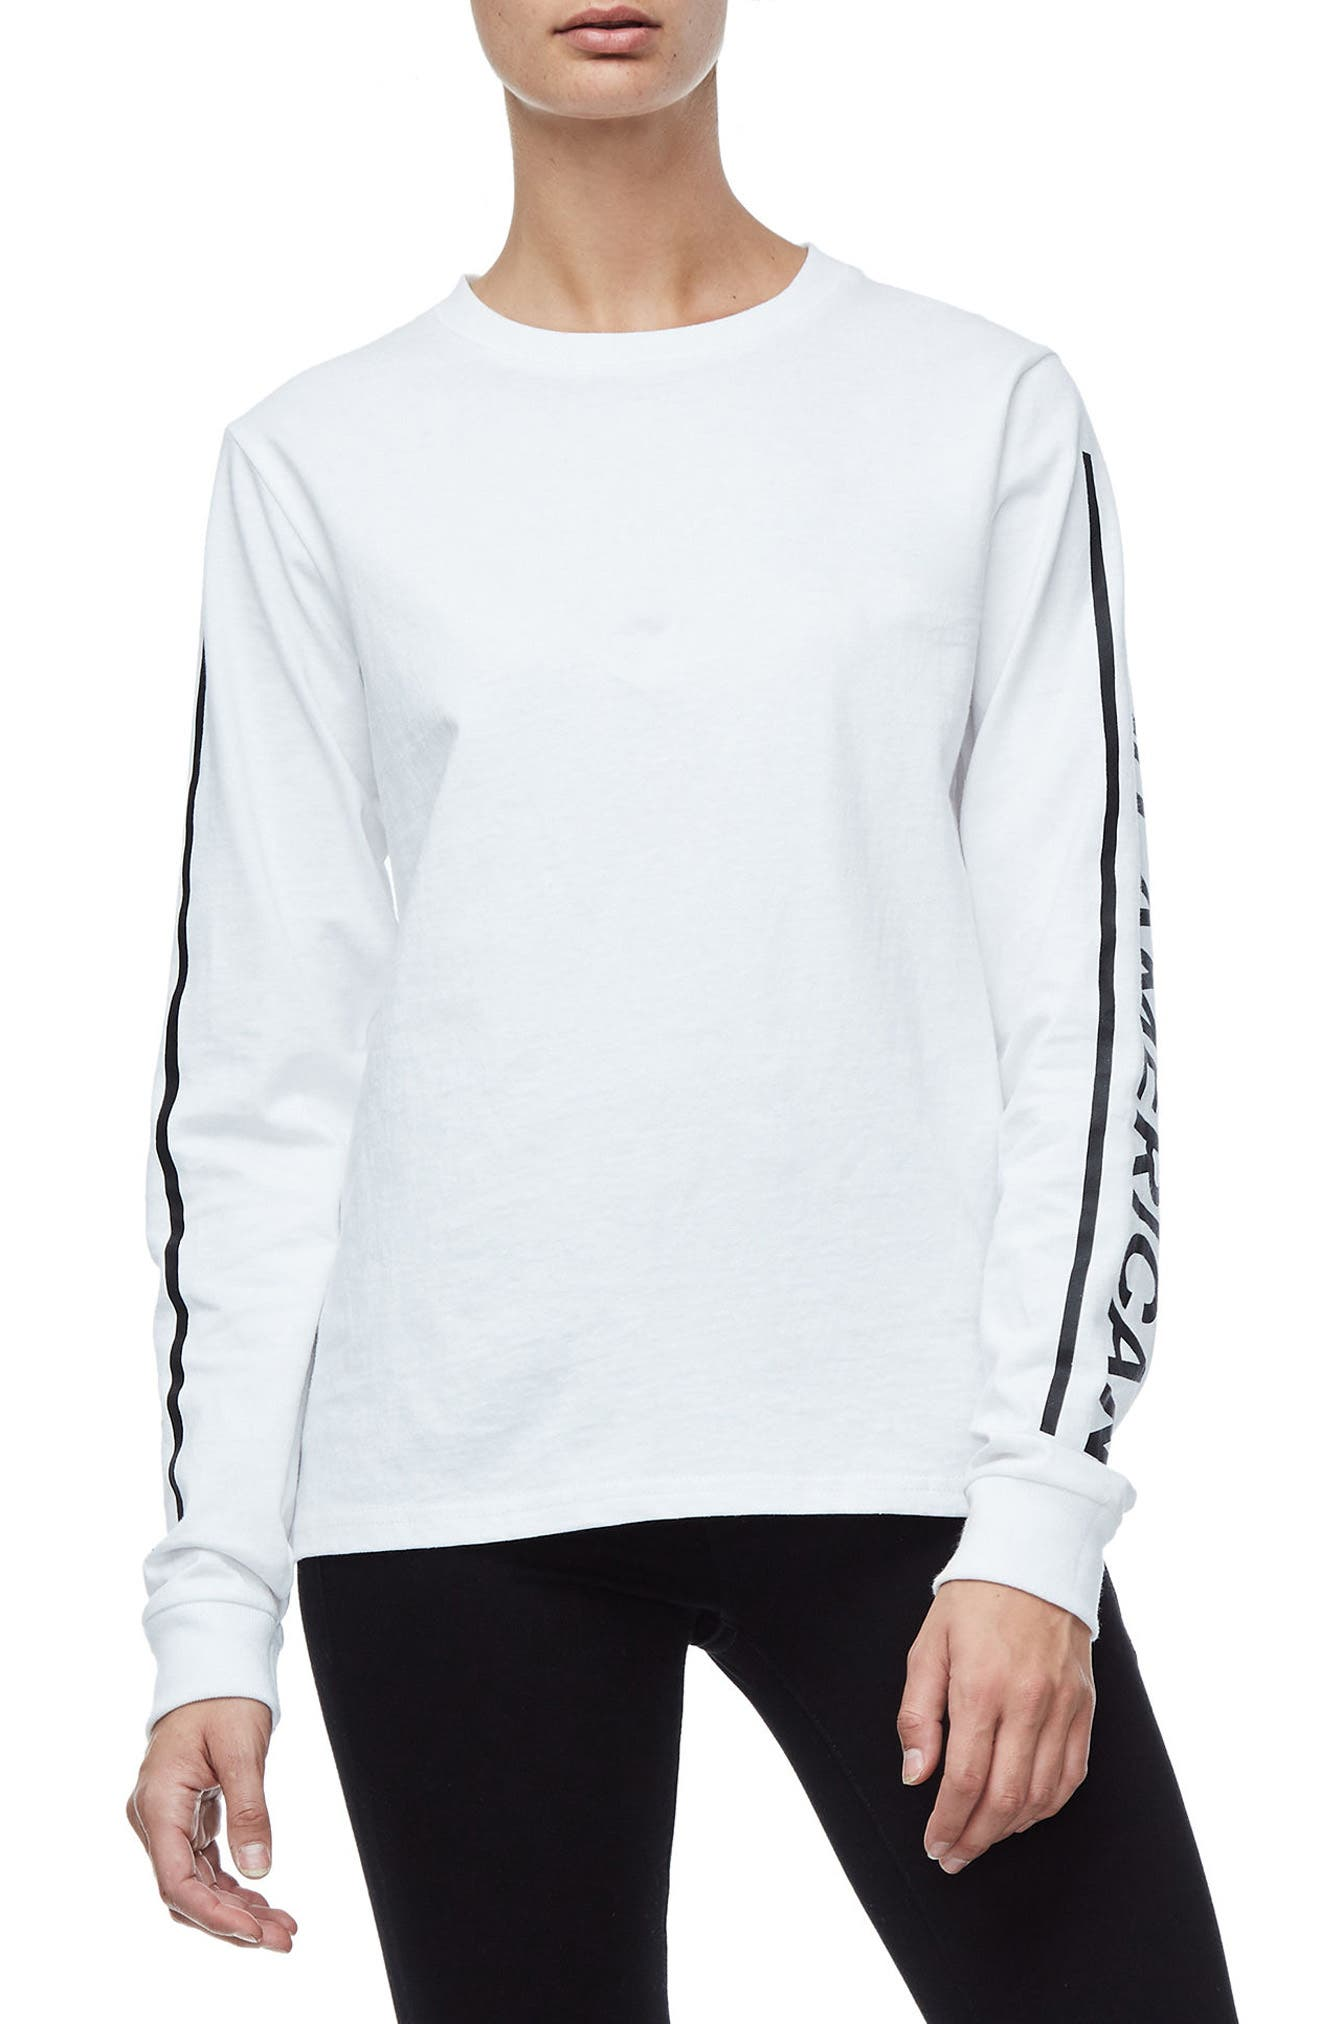 Goodies Long Sleeve Graphic Tee,                             Main thumbnail 1, color,                             White001